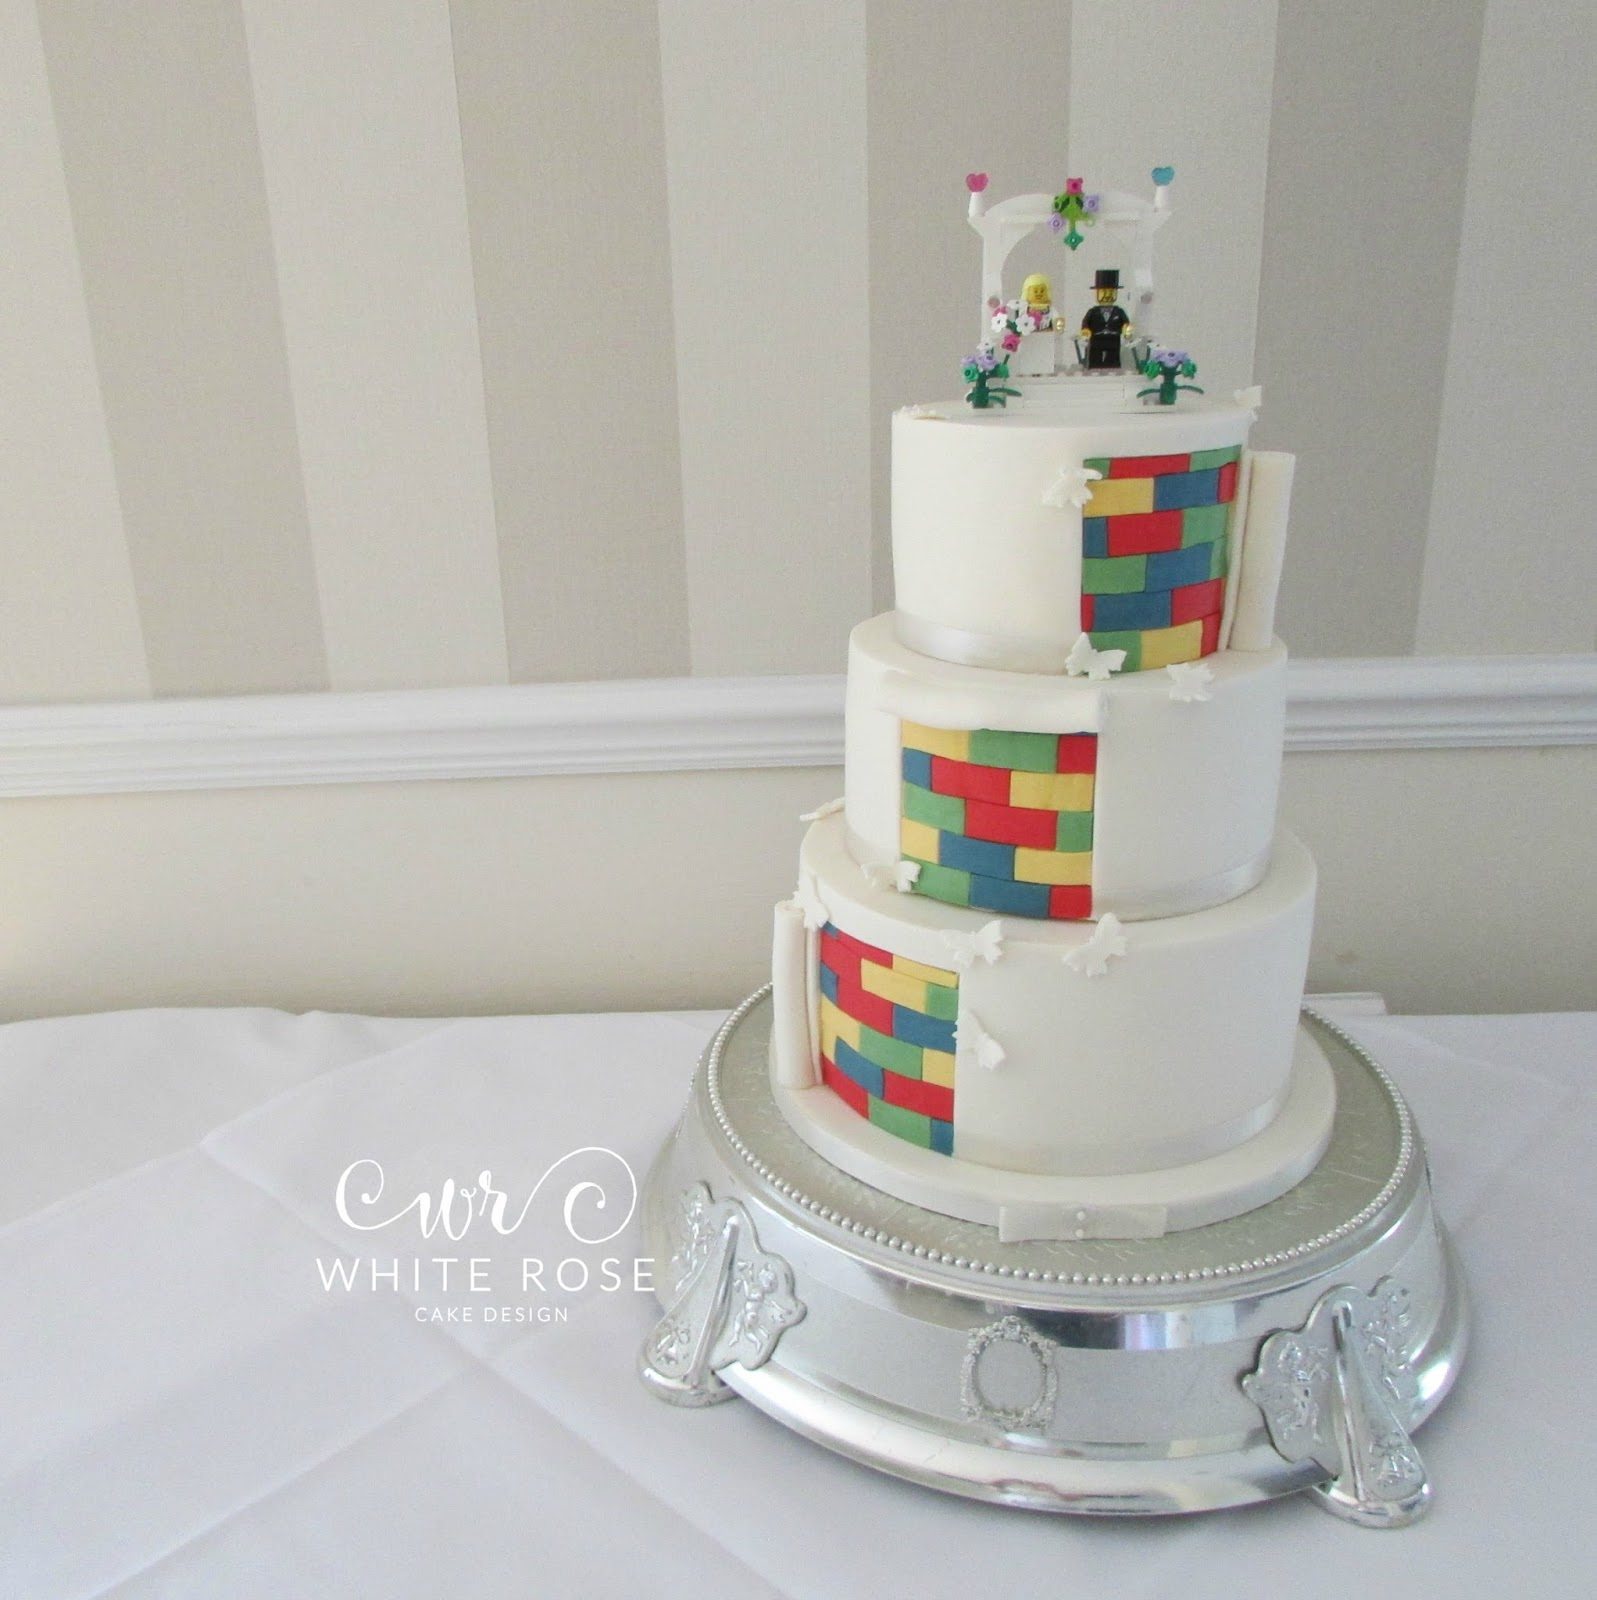 Wedding Cakes West Yorkshire Archives - Page 5 of 6 - White Rose ...